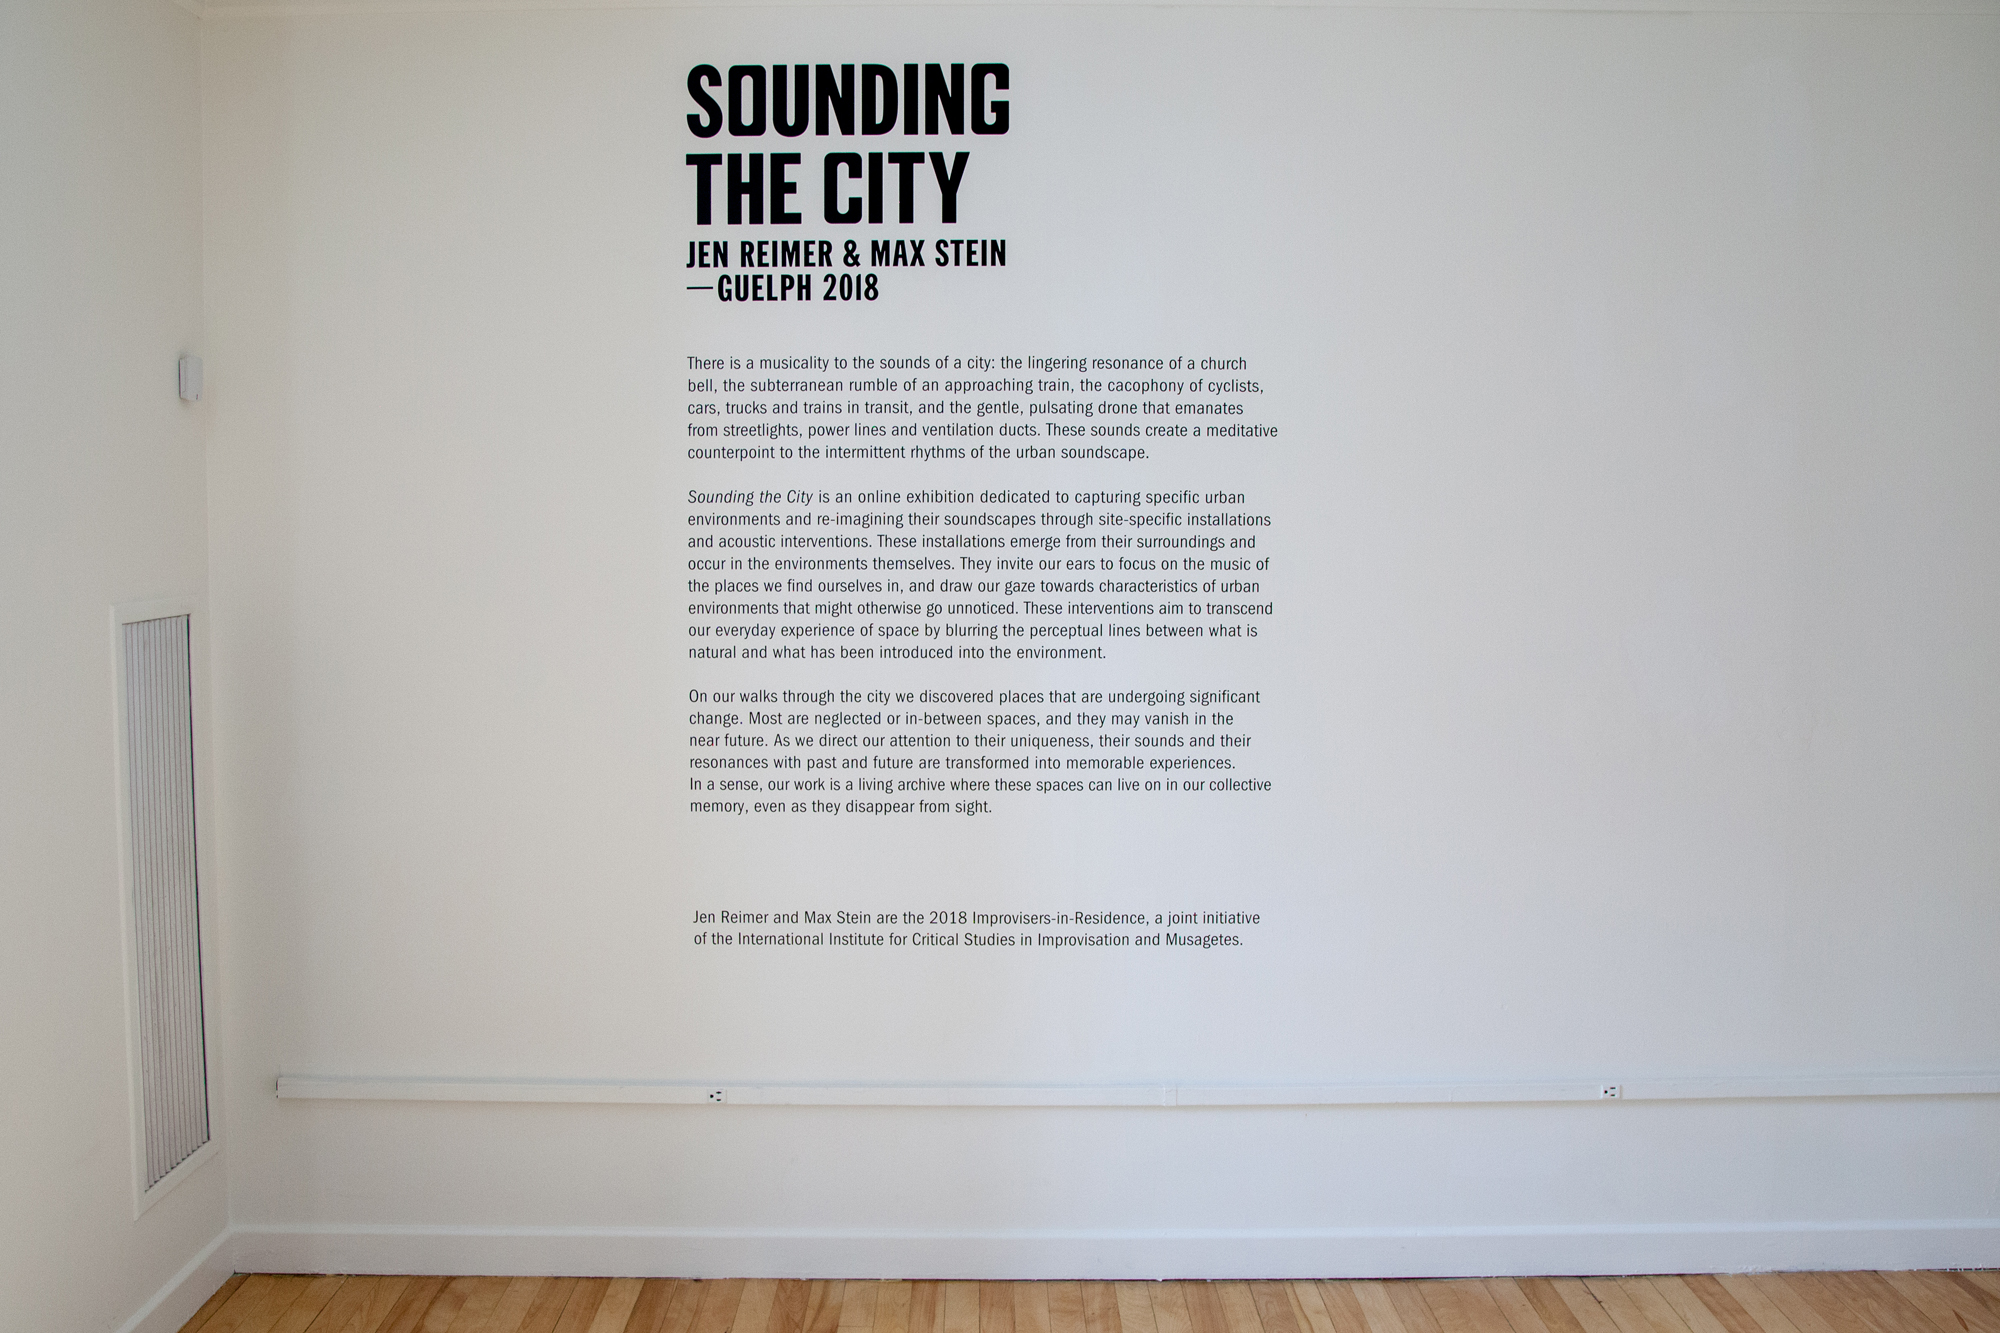 Exhibition photo 2 - Sounding the City 003 - Guelph 2018